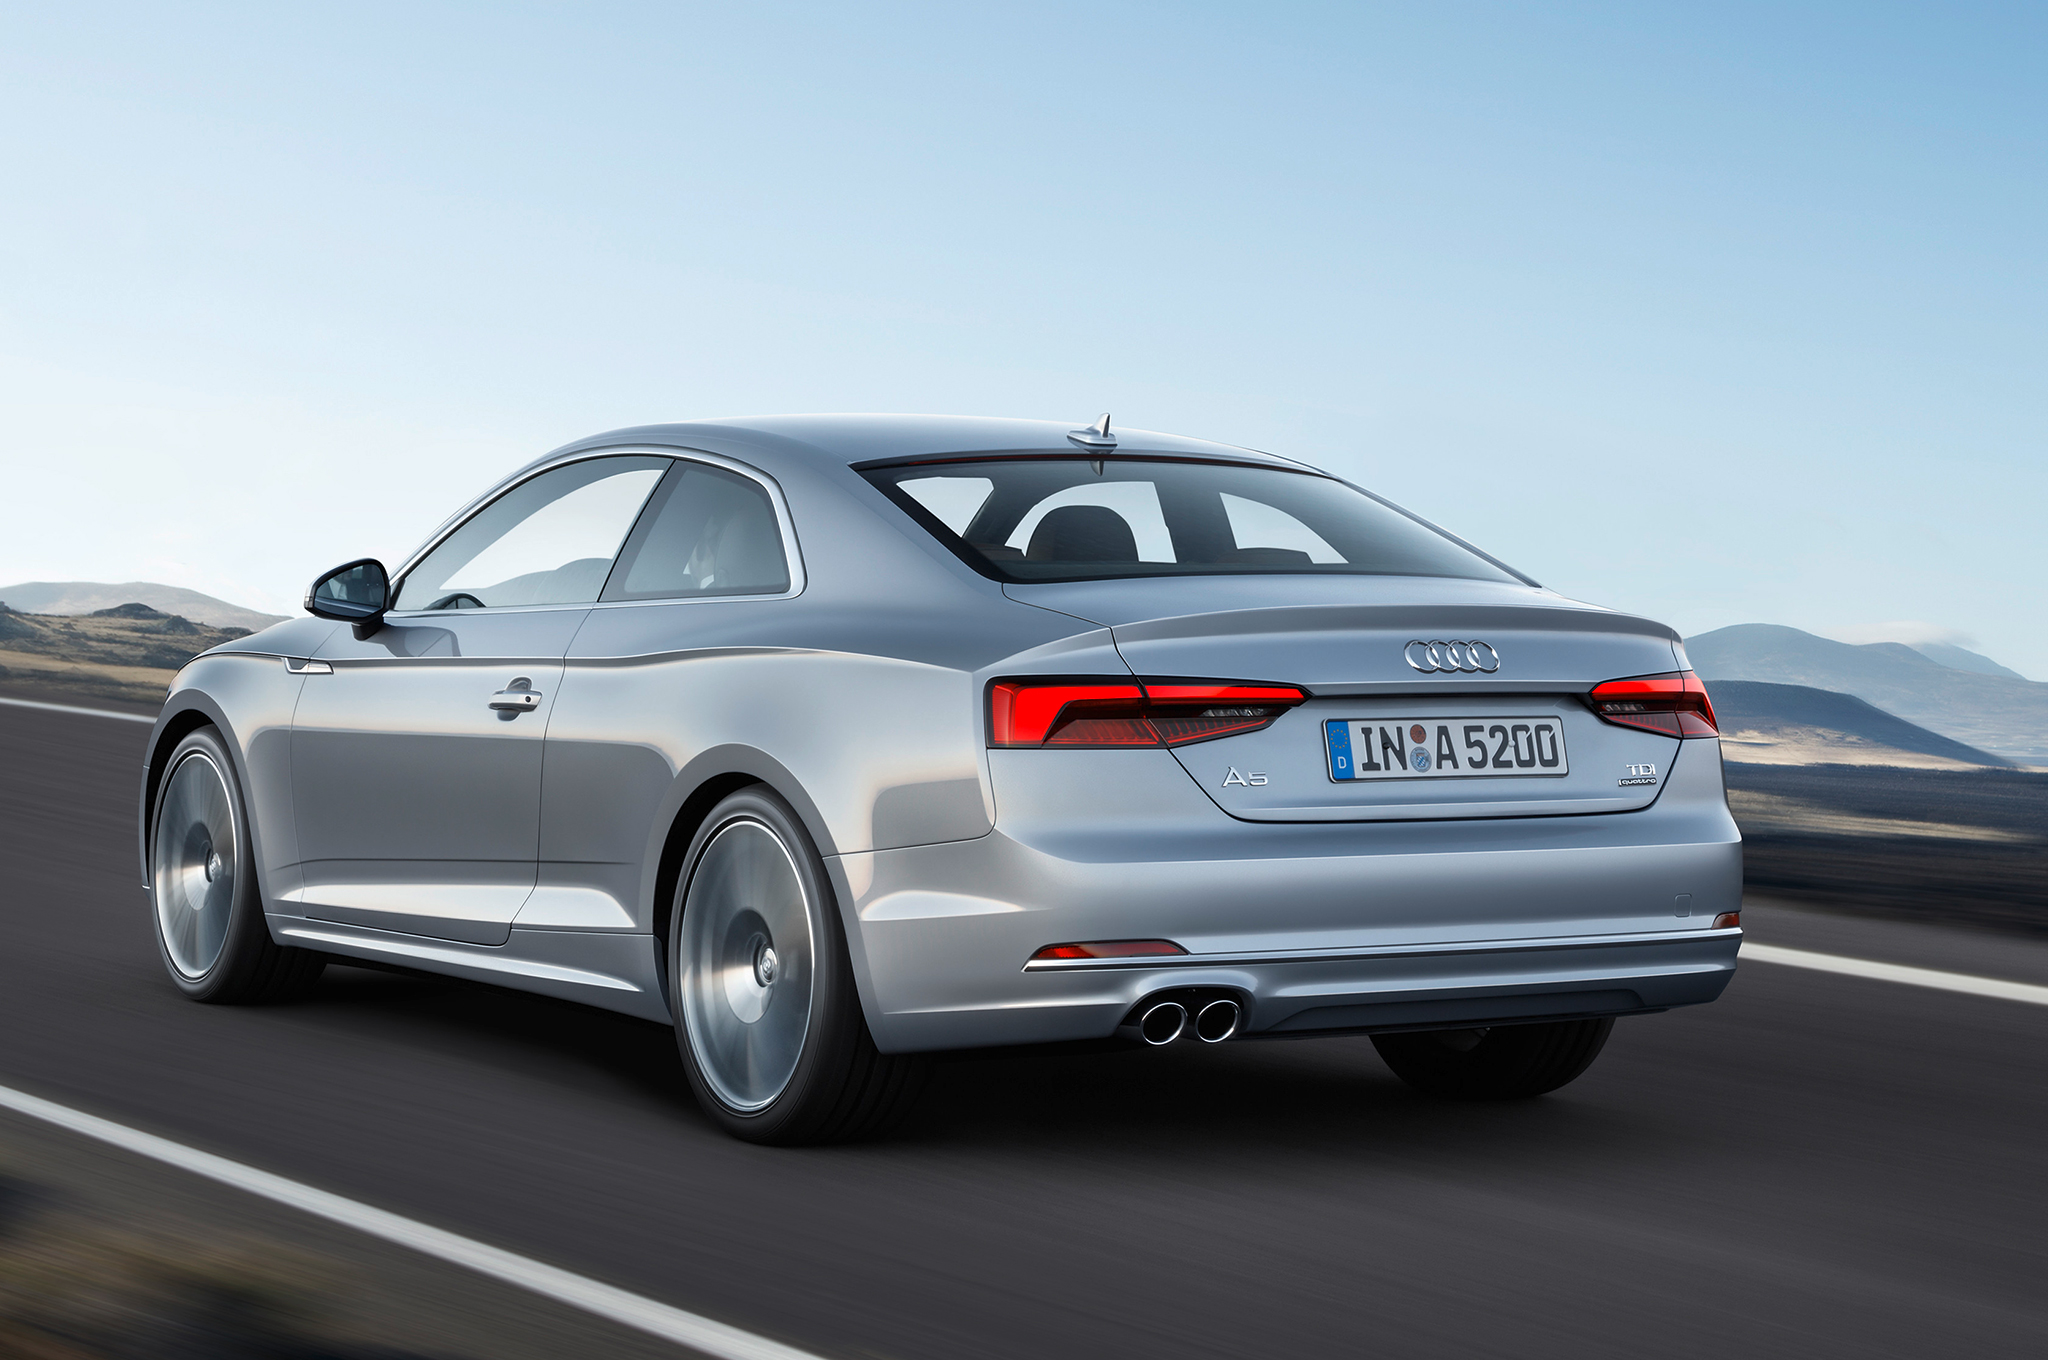 Amazing Audi A5 Pictures & Backgrounds